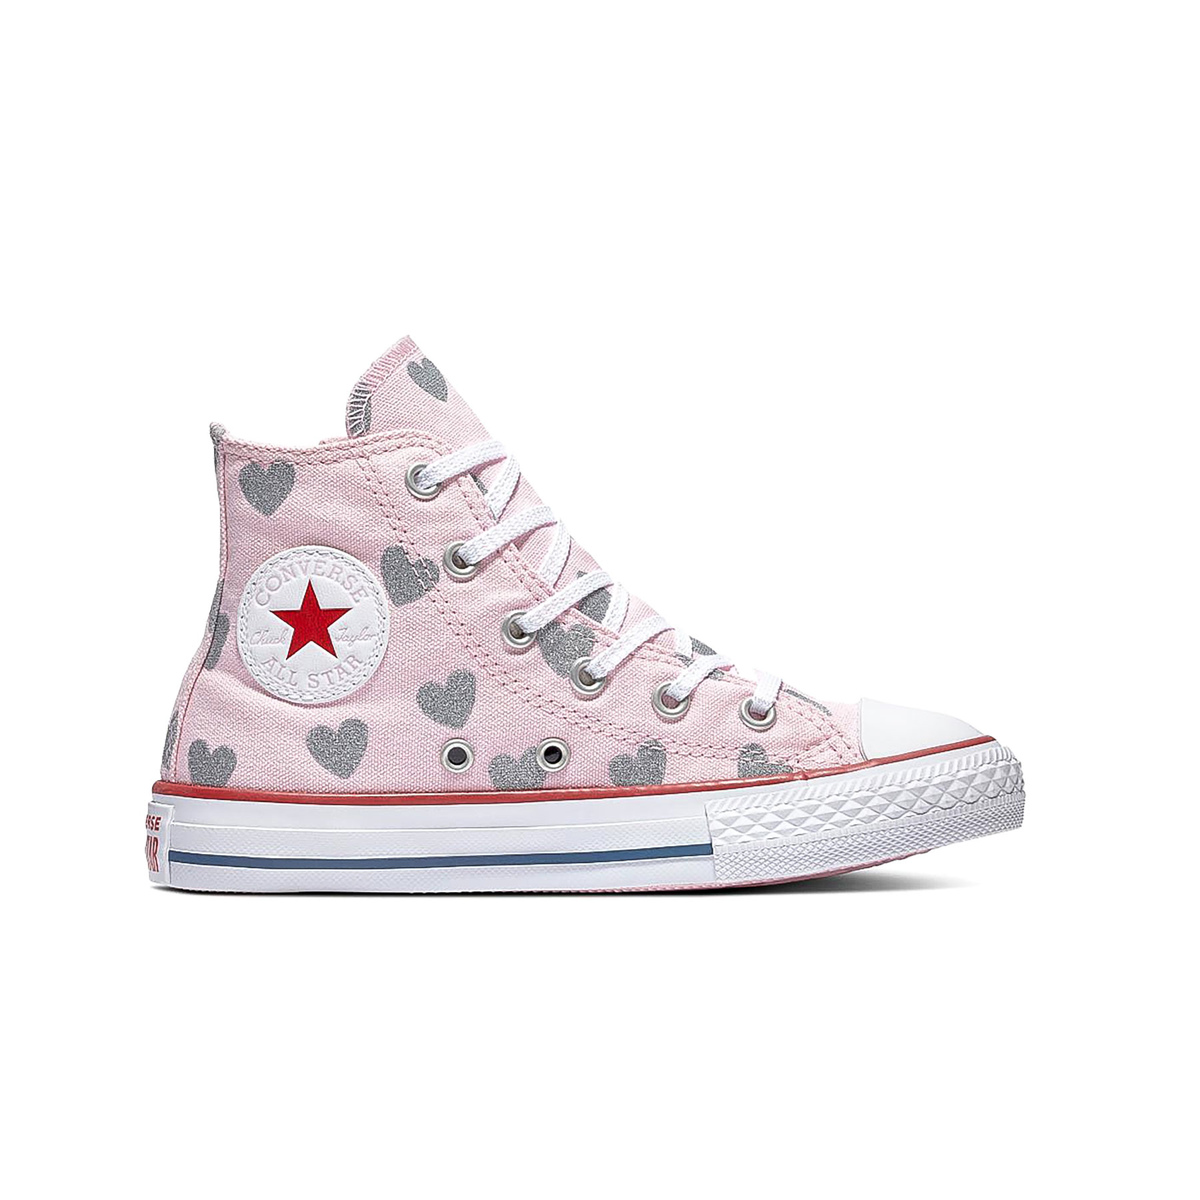 CHUCK TAYLOR ALL STAR SIDE ZIP